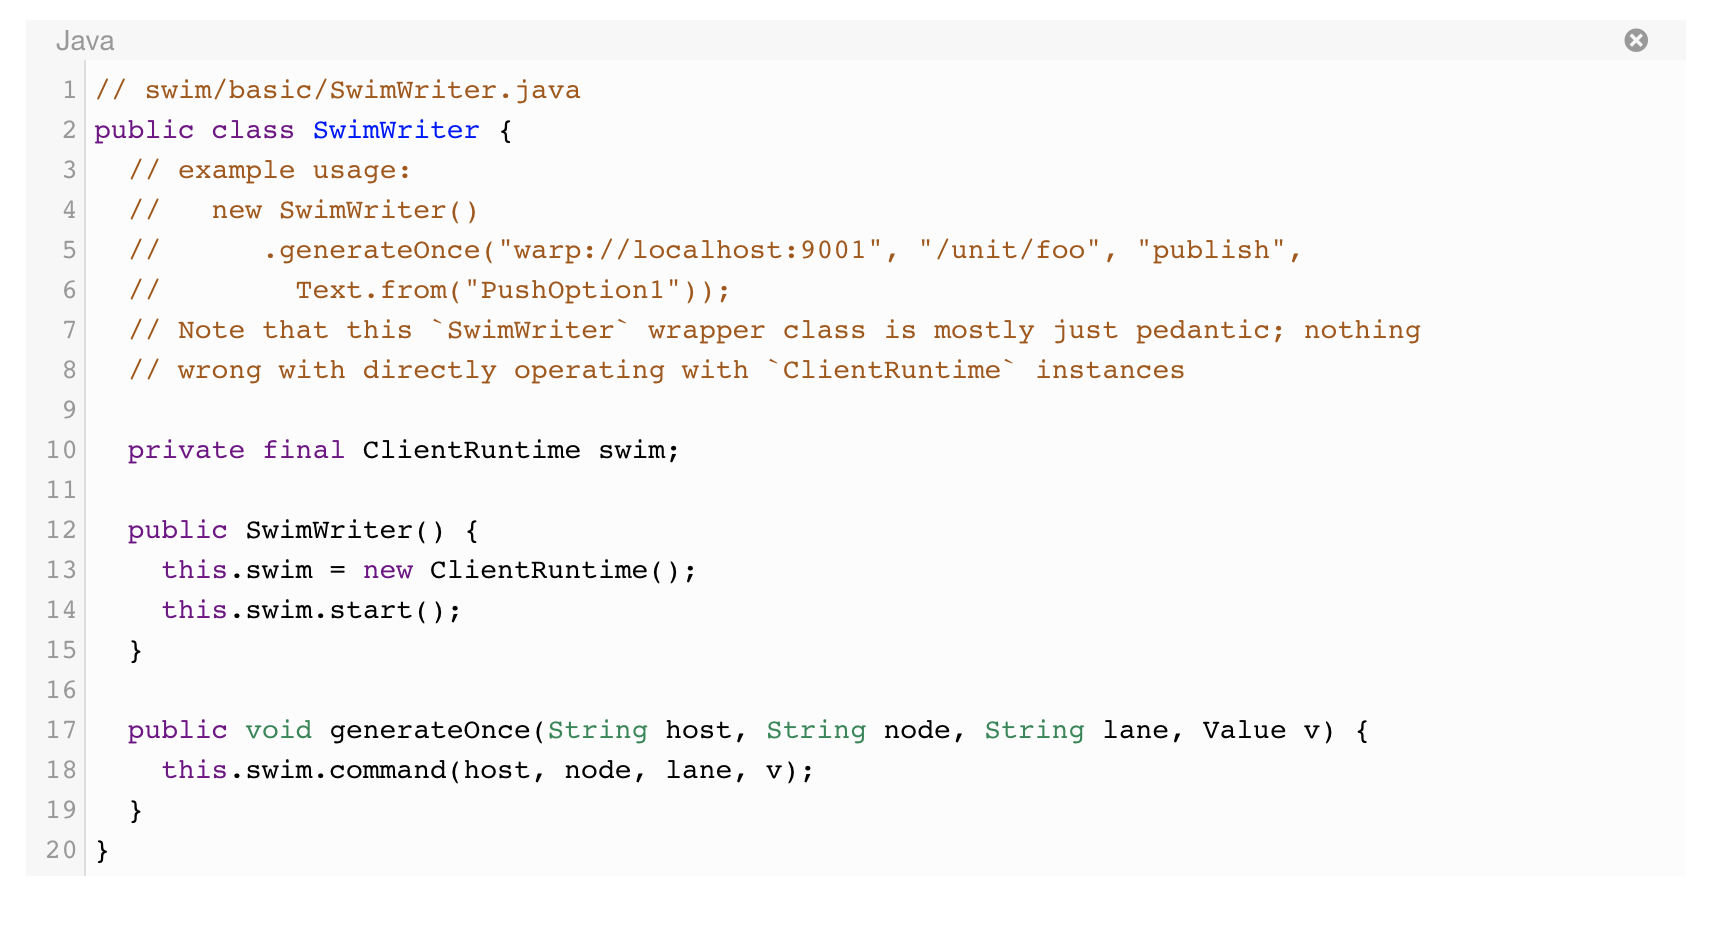 """// swim/basic/SwimWriter.java public class SwimWriter {   // example usage:   //   new SwimWriter()   //      .generateOnce(""""warp://localhost:9001"""", """"/unit/foo"""", """"publish"""",   //        Text.from(""""PushOption1""""));   // Note that this `SwimWriter` wrapper class is mostly just pedantic; nothing   // wrong with directly operating with `ClientRuntime` instances    private final ClientRuntime swim;    public SwimWriter() {     this.swim = new ClientRuntime();     this.swim.start();   }    public void generateOnce(String host, String node, String lane, Value v) {     this.swim.command(host, node, lane, v);   } }Screen Shot 2019-05-30 at 10.19.34 AM"""